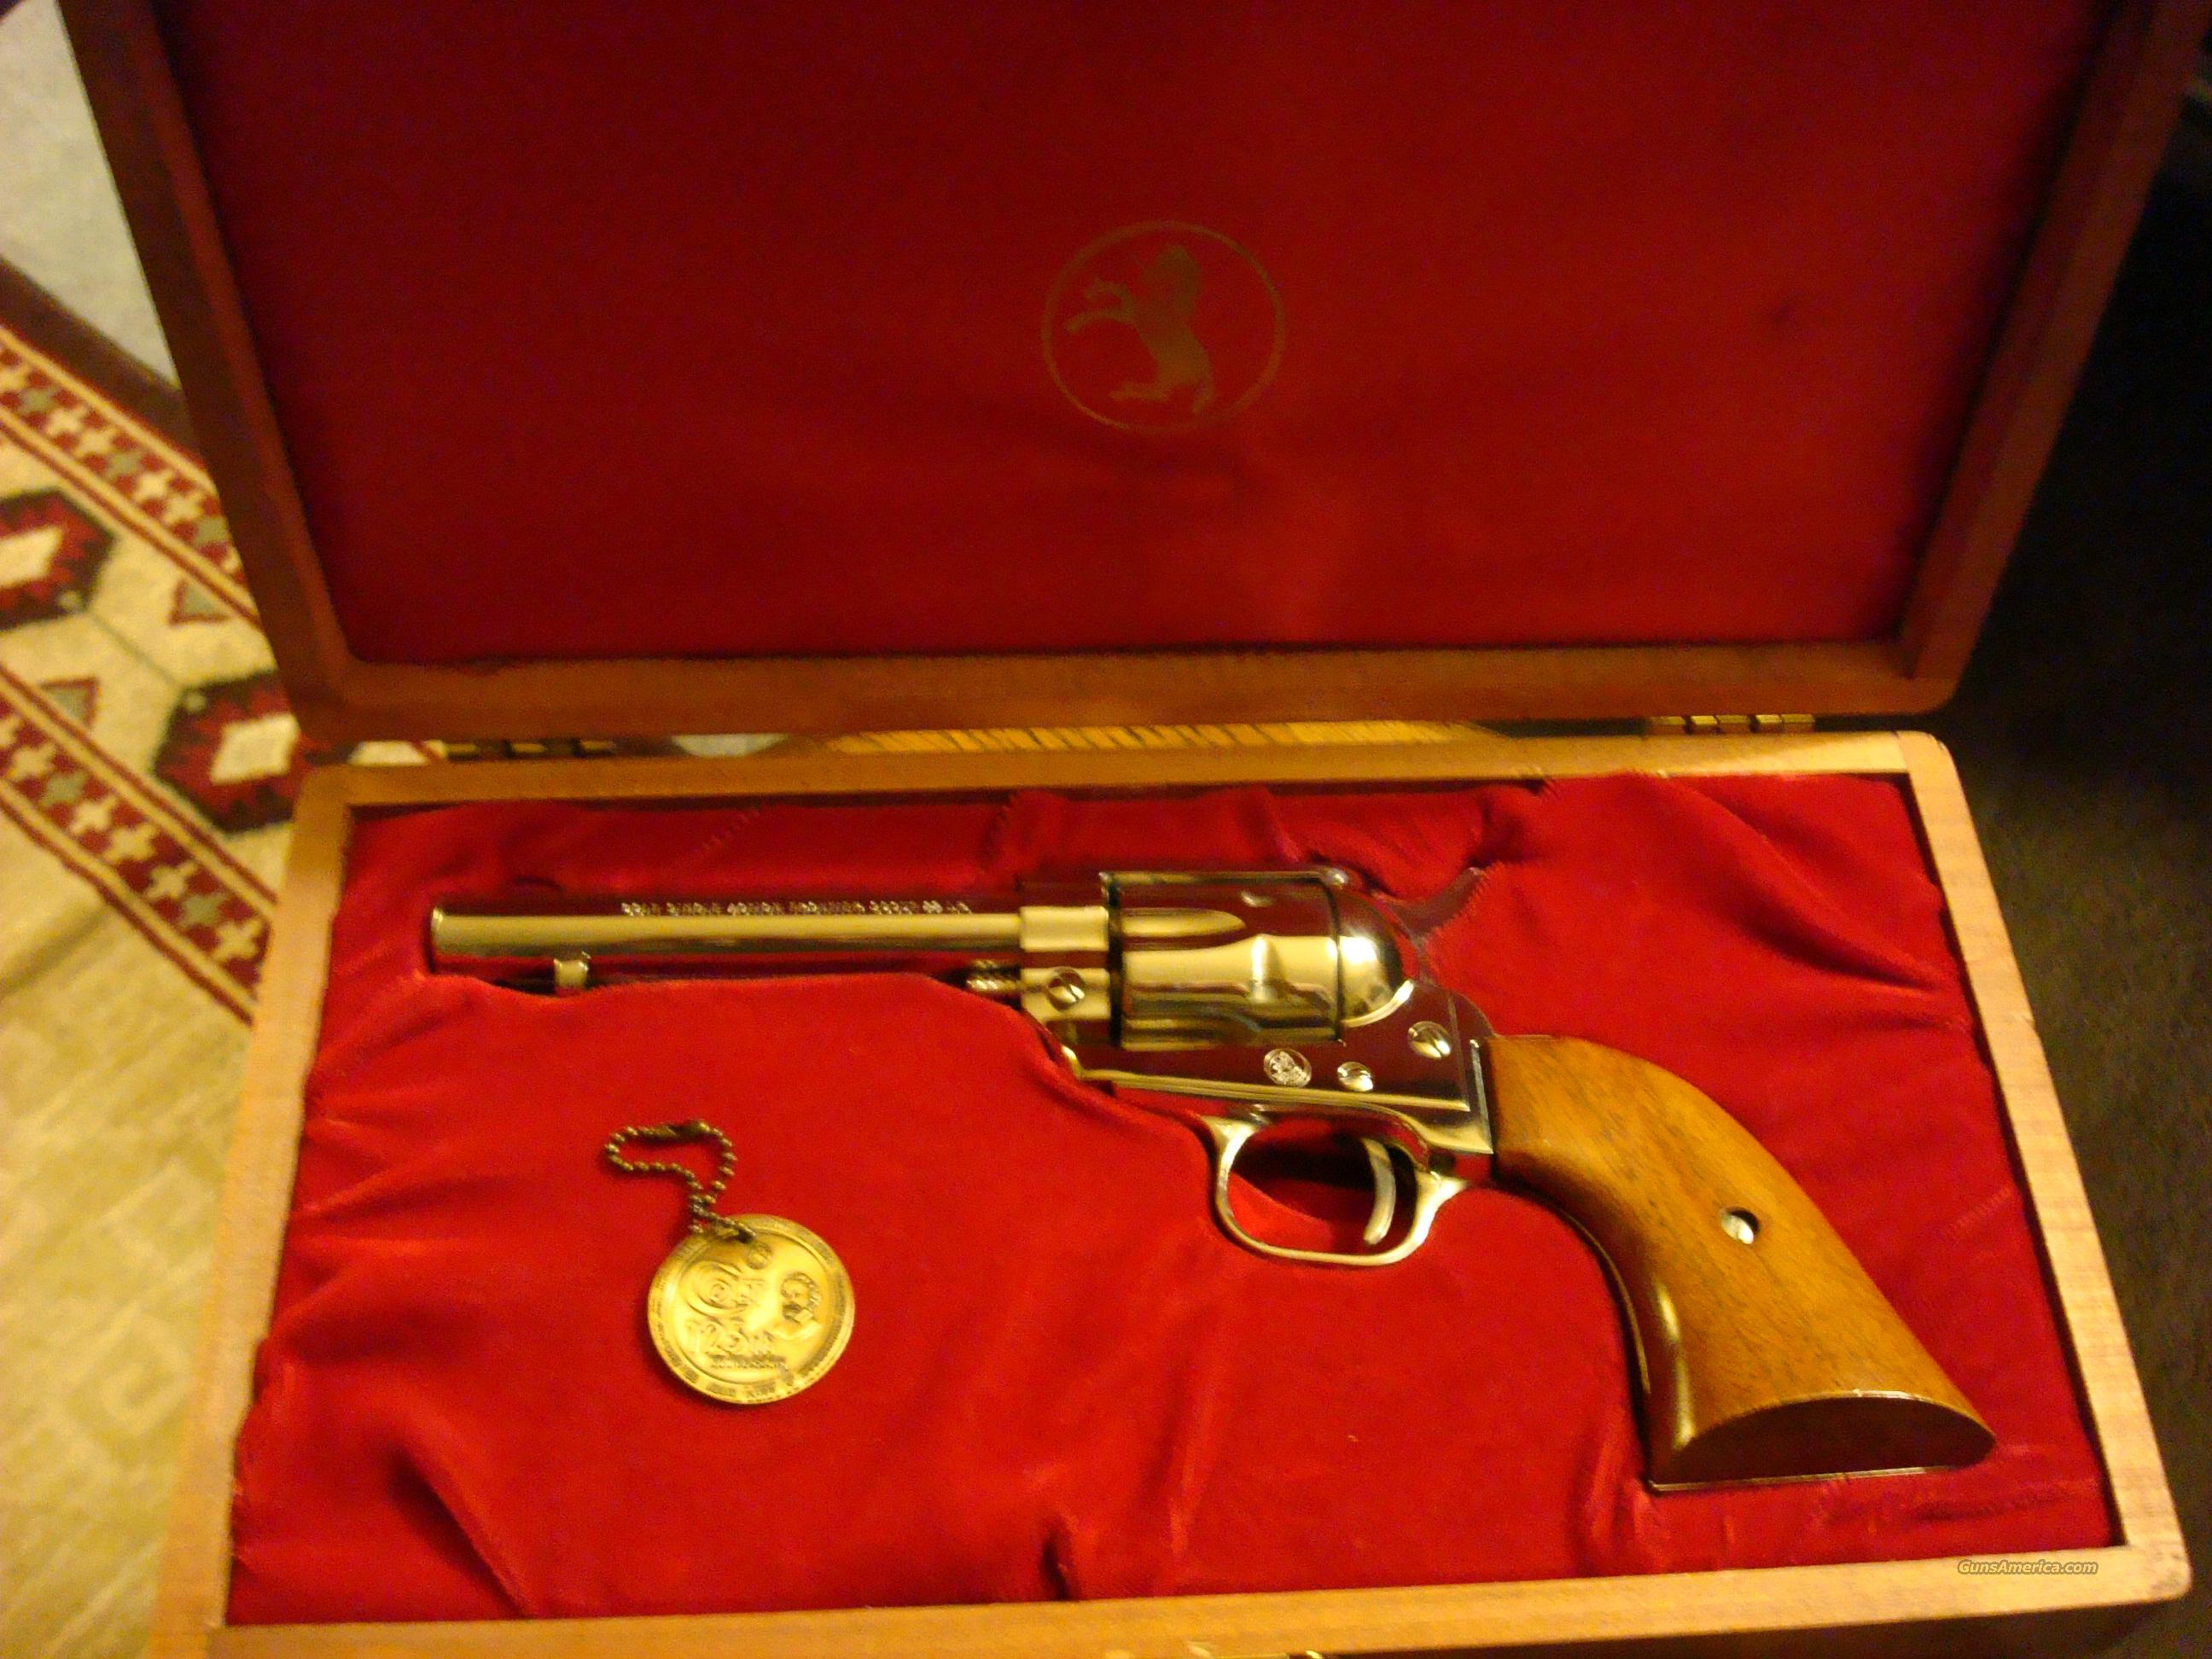 Colt Frontier Scout 22 Cal - Nickel Plating   Guns > Pistols > Colt Single Action Revolvers - Modern (22 Cal.)